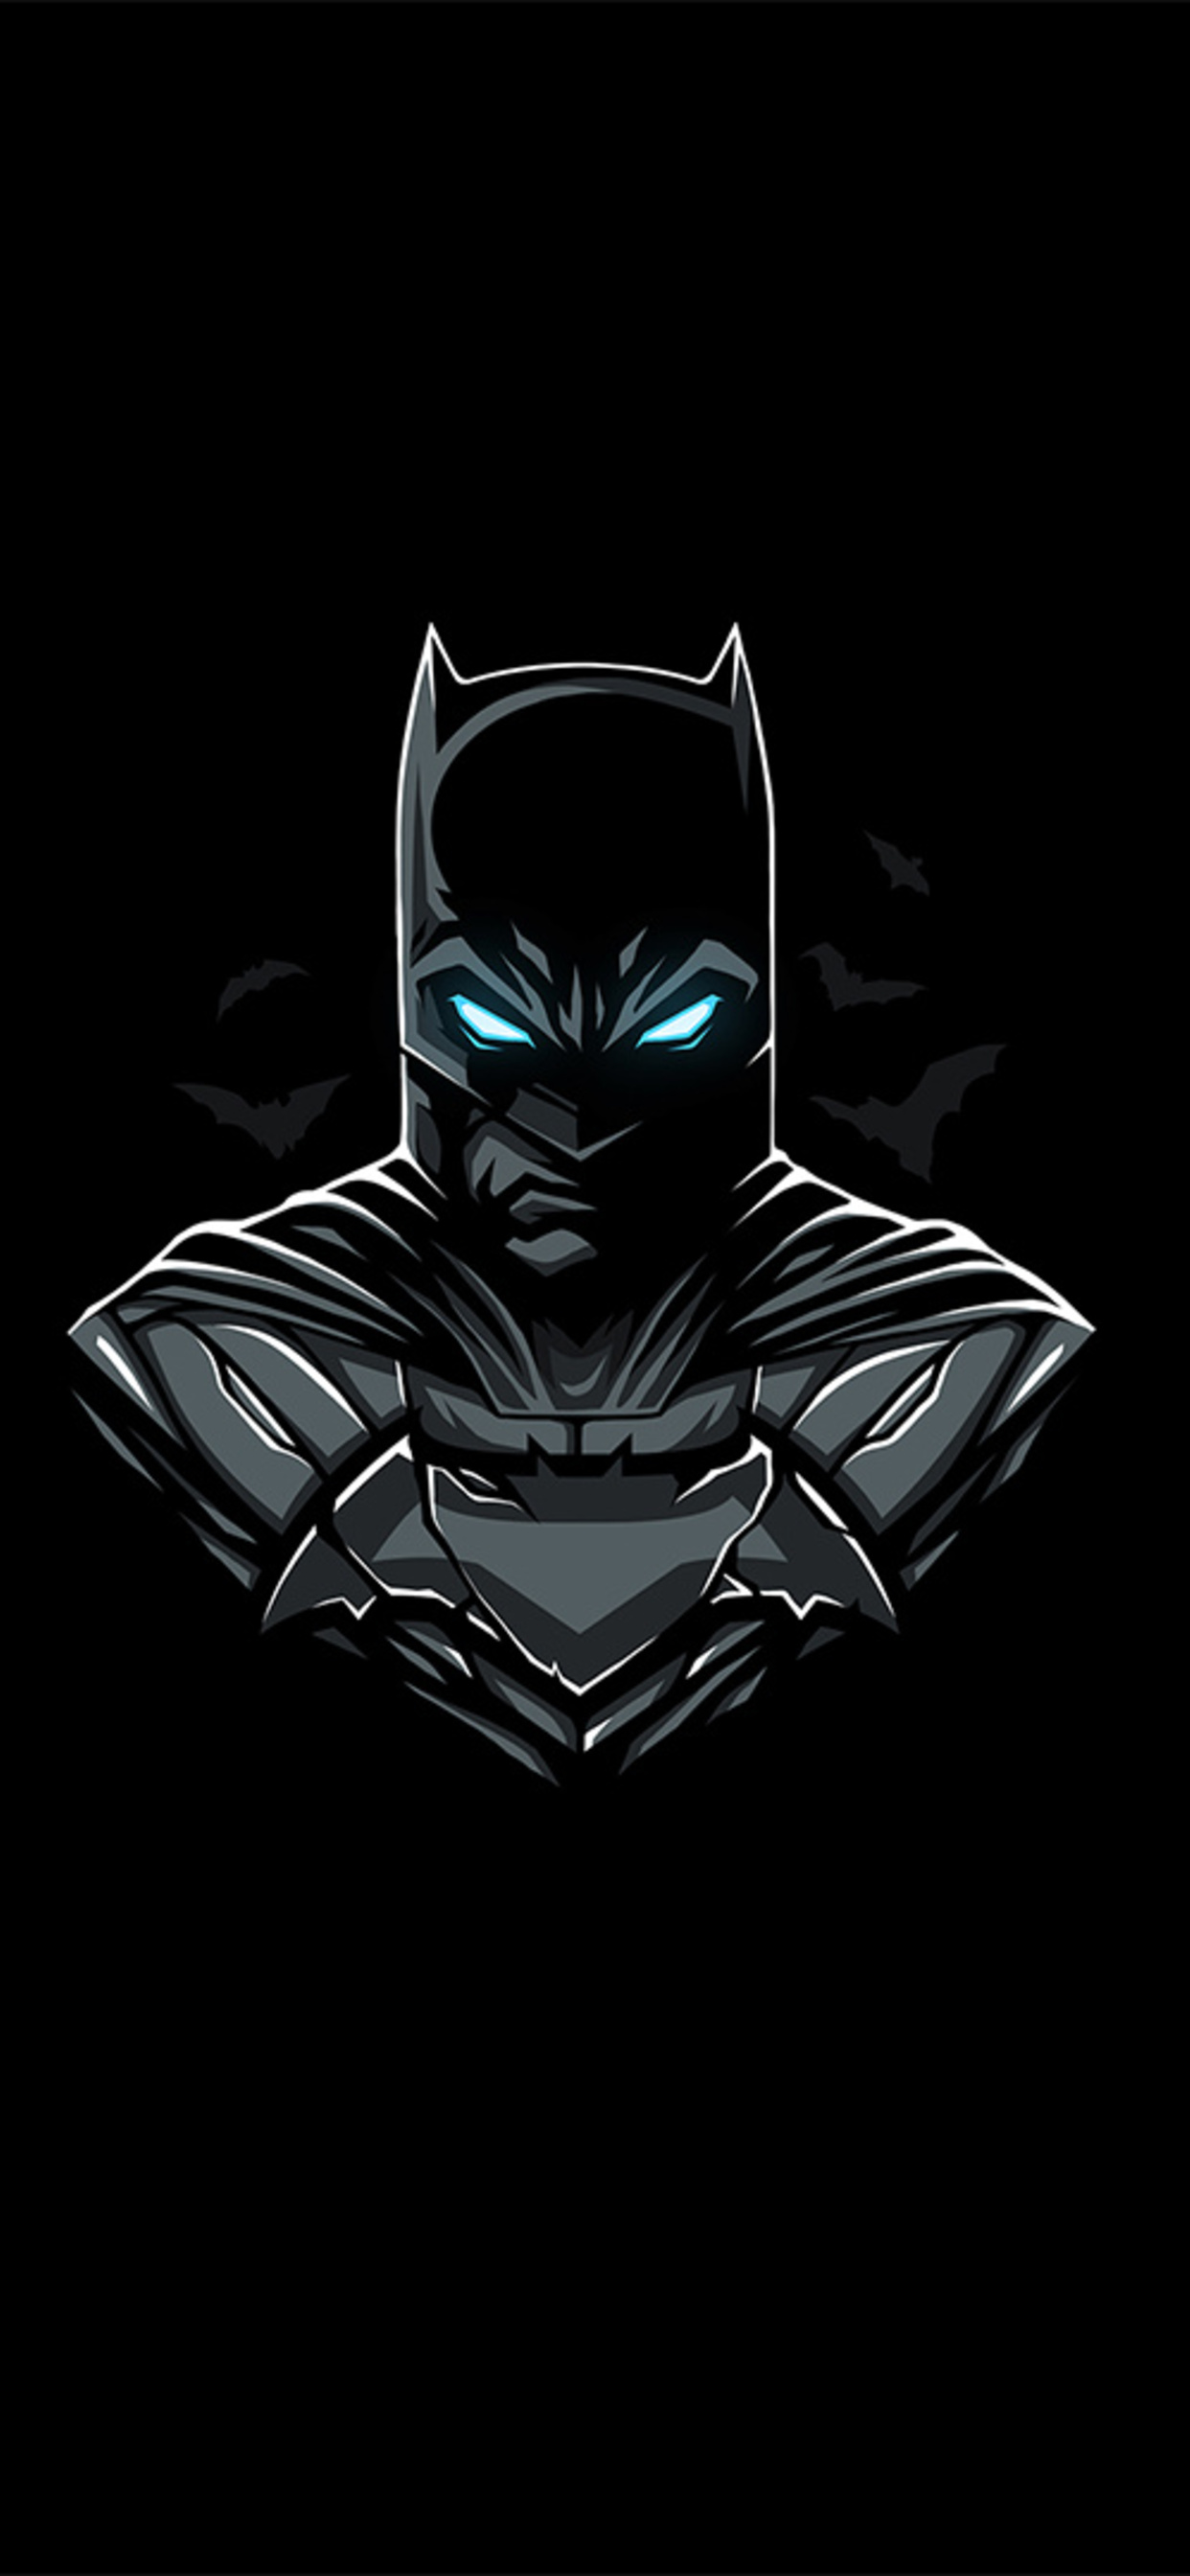 1242x2688 Batman Amoled Iphone Xs Max Hd 4k Wallpapers